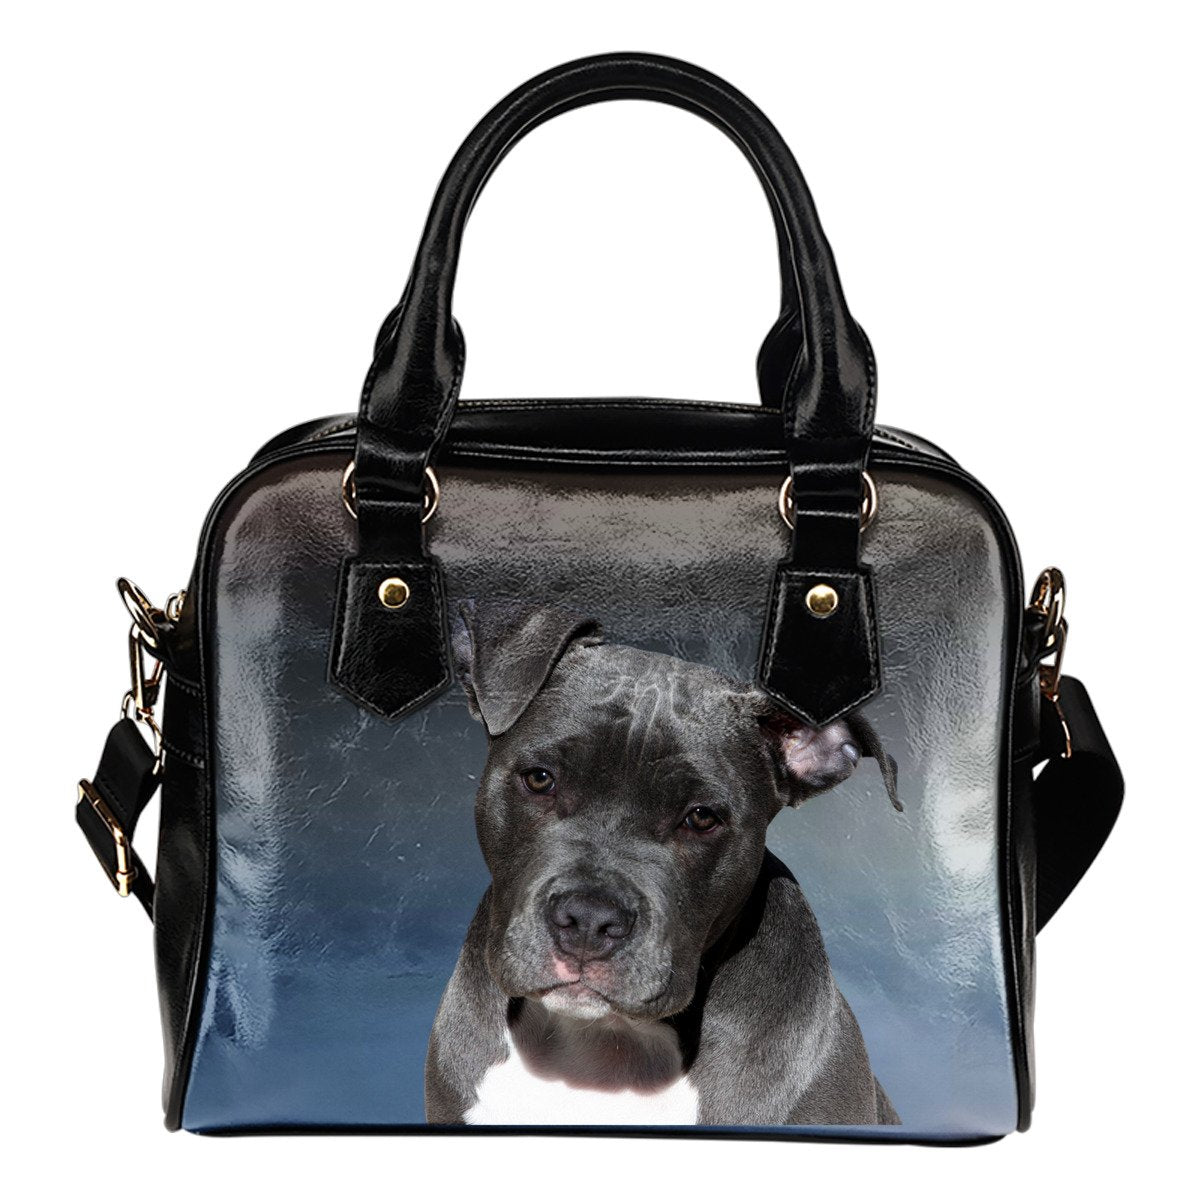 American Staffordshire Bull Terrier Shoulder Bag